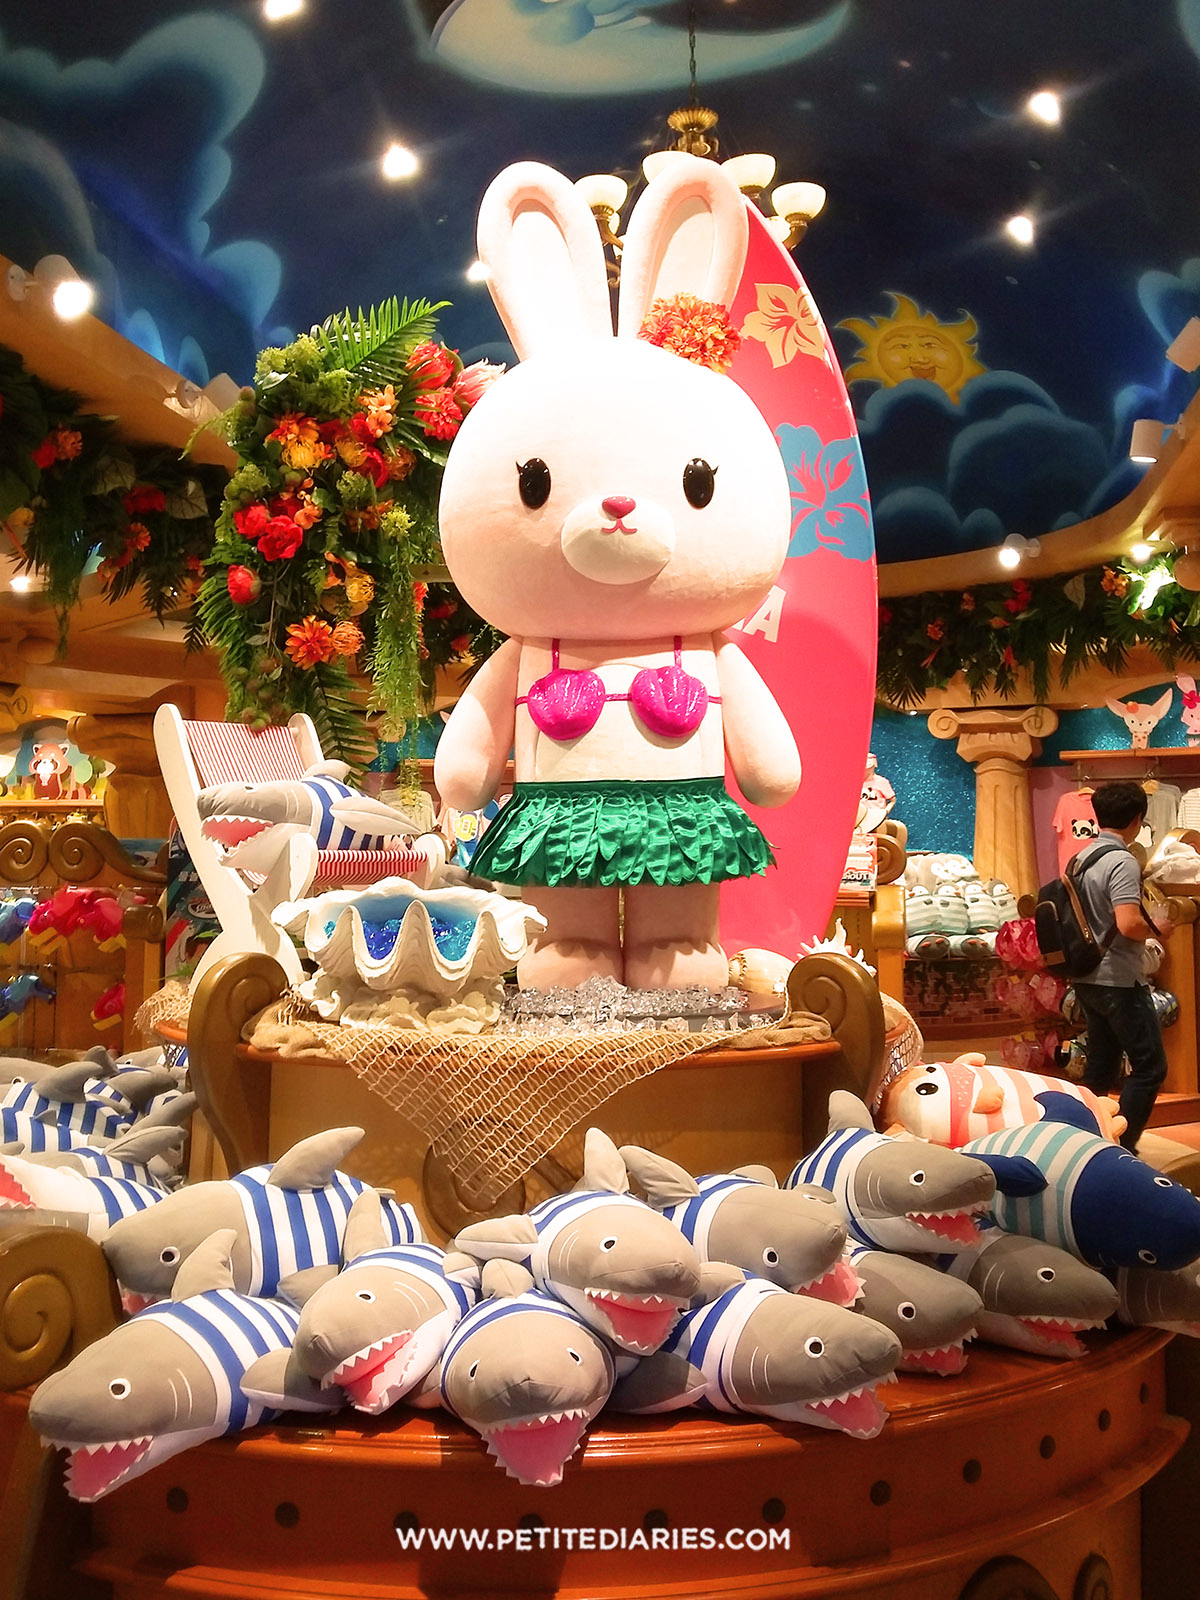 everland korea store